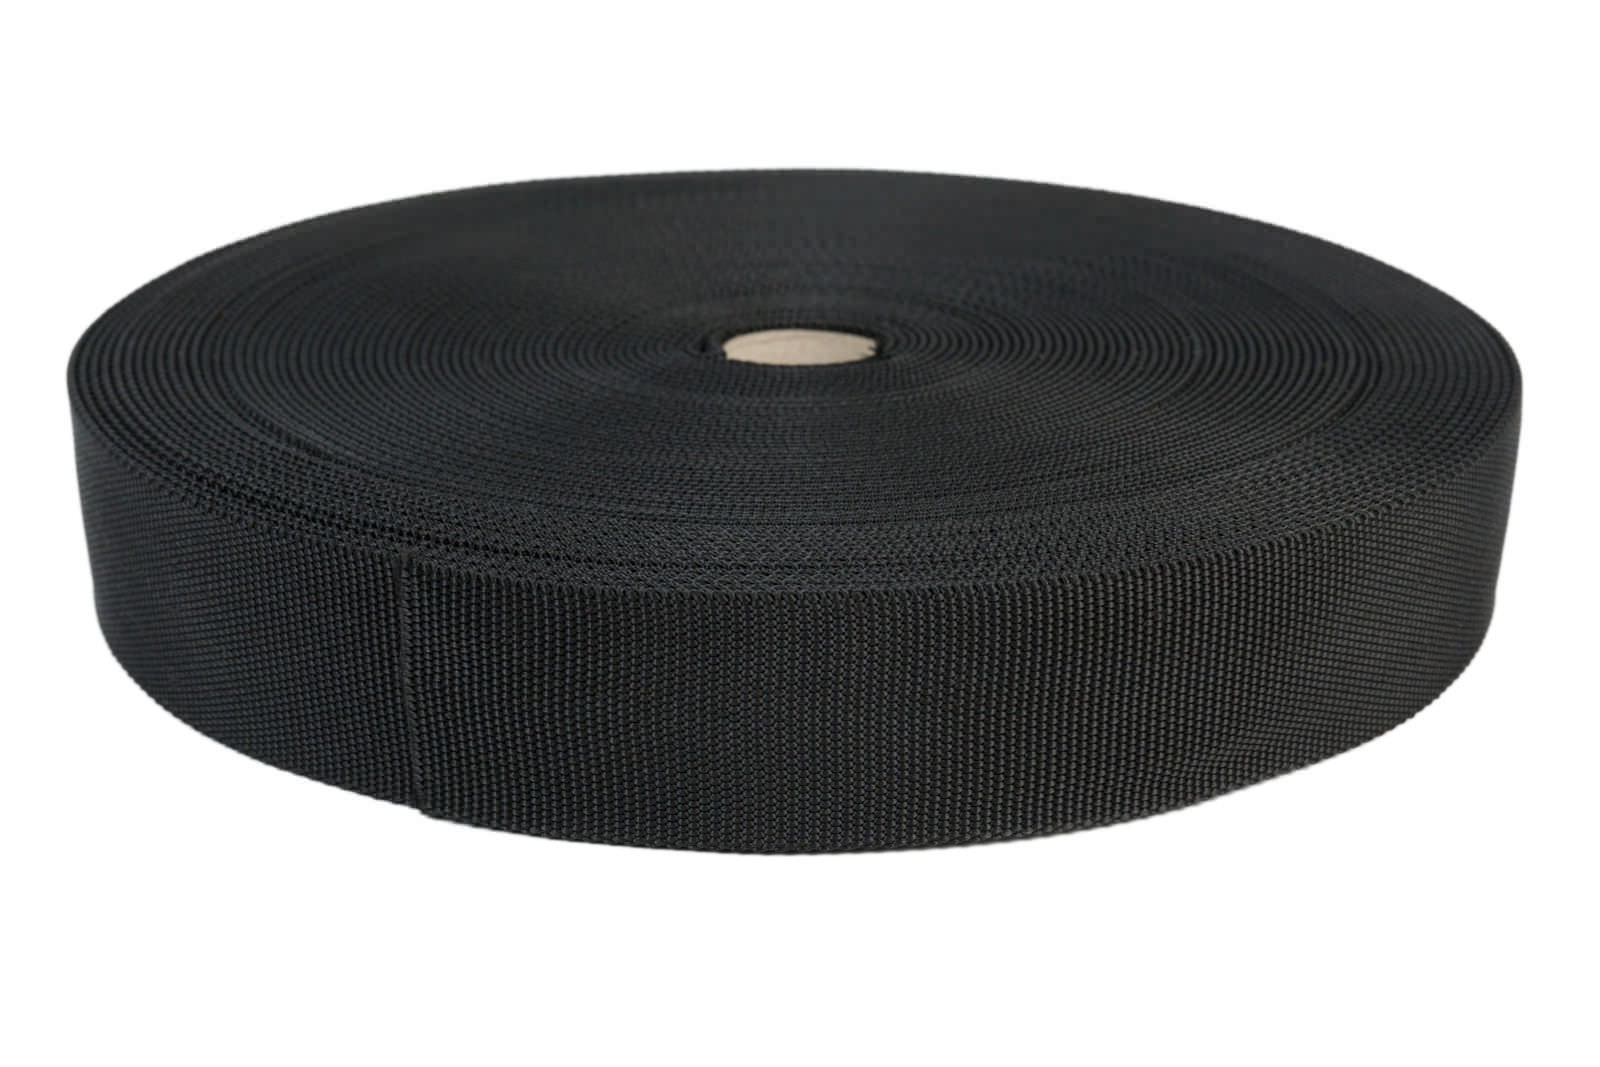 ... flat sleeve / for hydraulic hoses / protection / textile ...  sc 1 st  DirectIndustry & Flat sleeve / for hydraulic hoses / protection / textile - SL-RDX ...